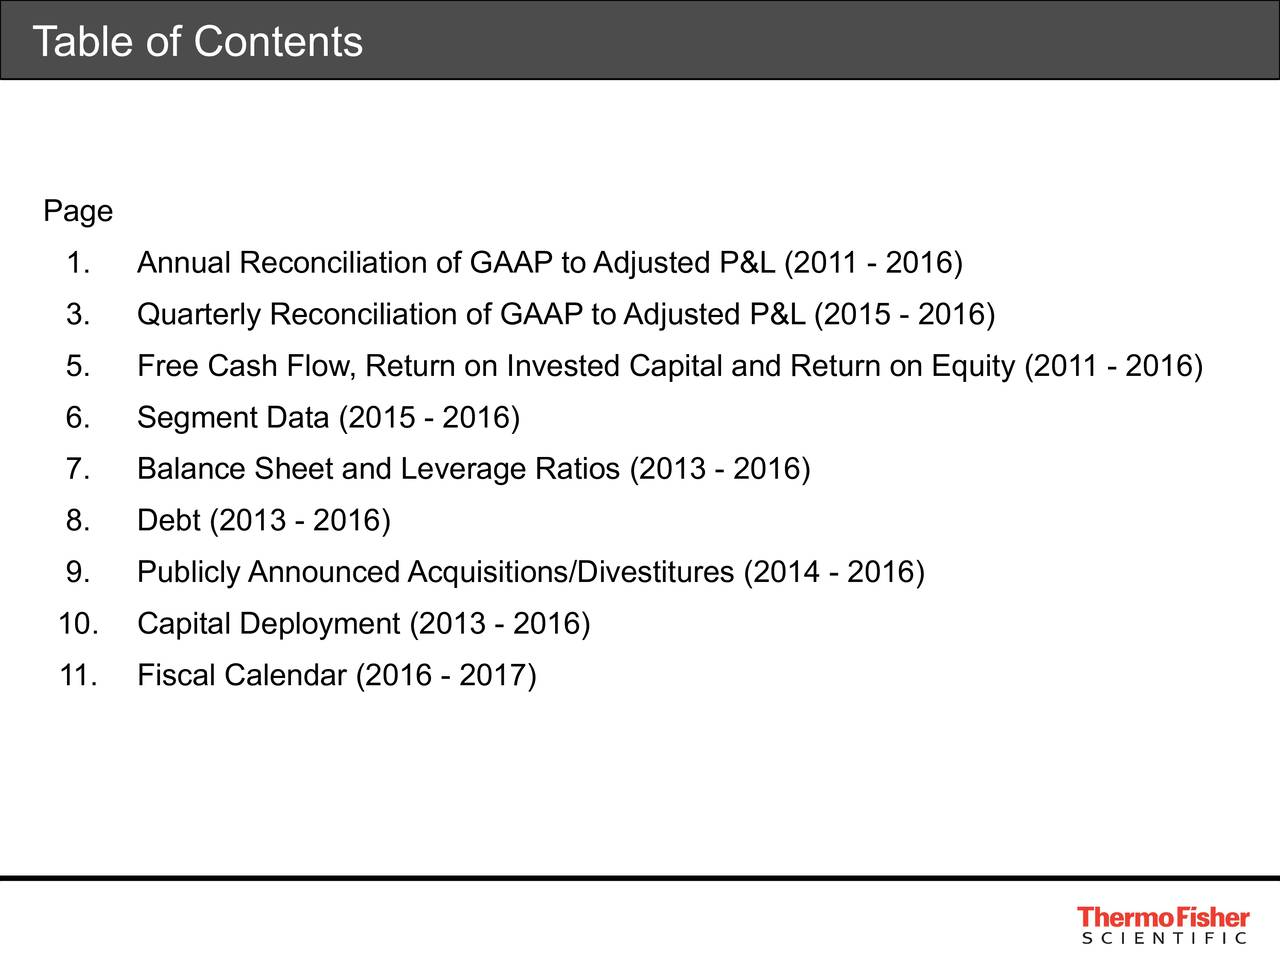 Page 1. Annual Reconciliation of GAAP to Adjusted P&L (2011 - 2016) 3. Quarterly Reconciliation of GAAP to Adjusted P&L (2015 - 2016) 5. Free Cash Flow, Return on Invested Capital and Return on Equity (2011 - 2016) 6. Segment Data (2015 - 2016) 7. Balance Sheet and Leverage Ratios (2013 - 2016) 8. Debt (2013 - 2016) 9. Publicly Announced Acquisitions/Divestitures (2014 - 2016) 10. Capital Deployment (2013 - 2016) 11. Fiscal Calendar (2016 - 2017)